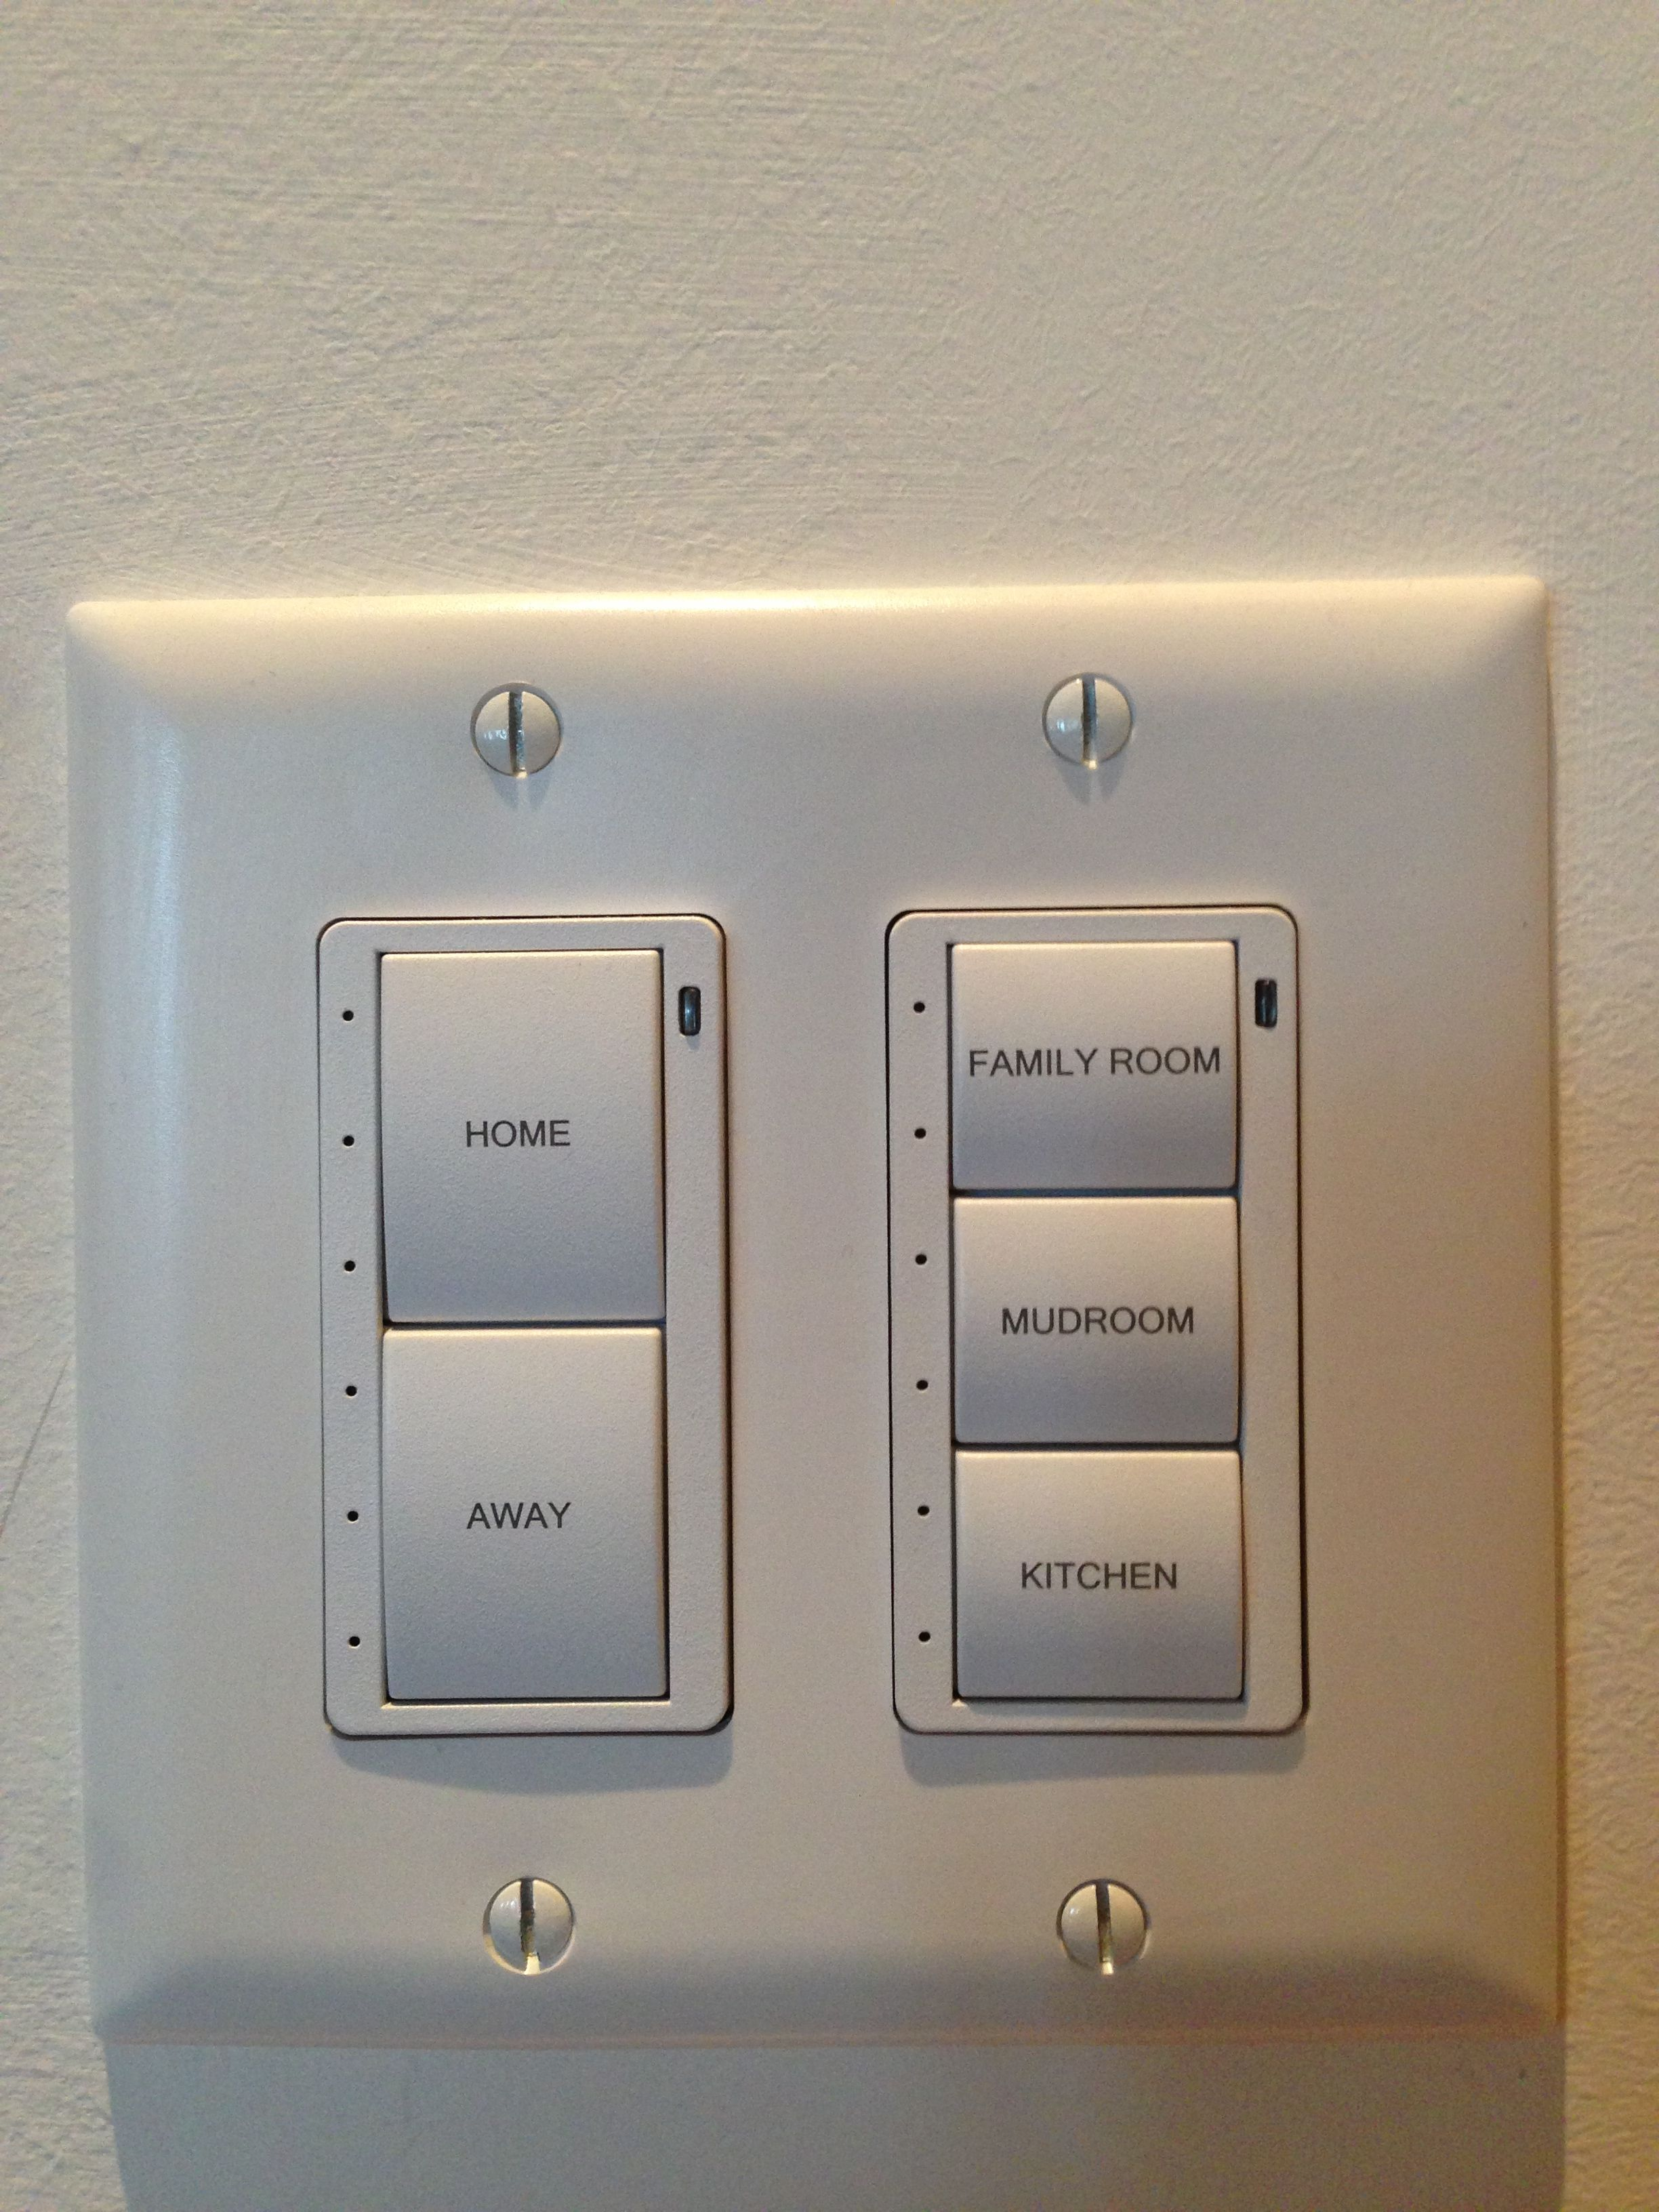 Lamp Switch Types Style Of Lighting Control Keypad Stereo Types Offers